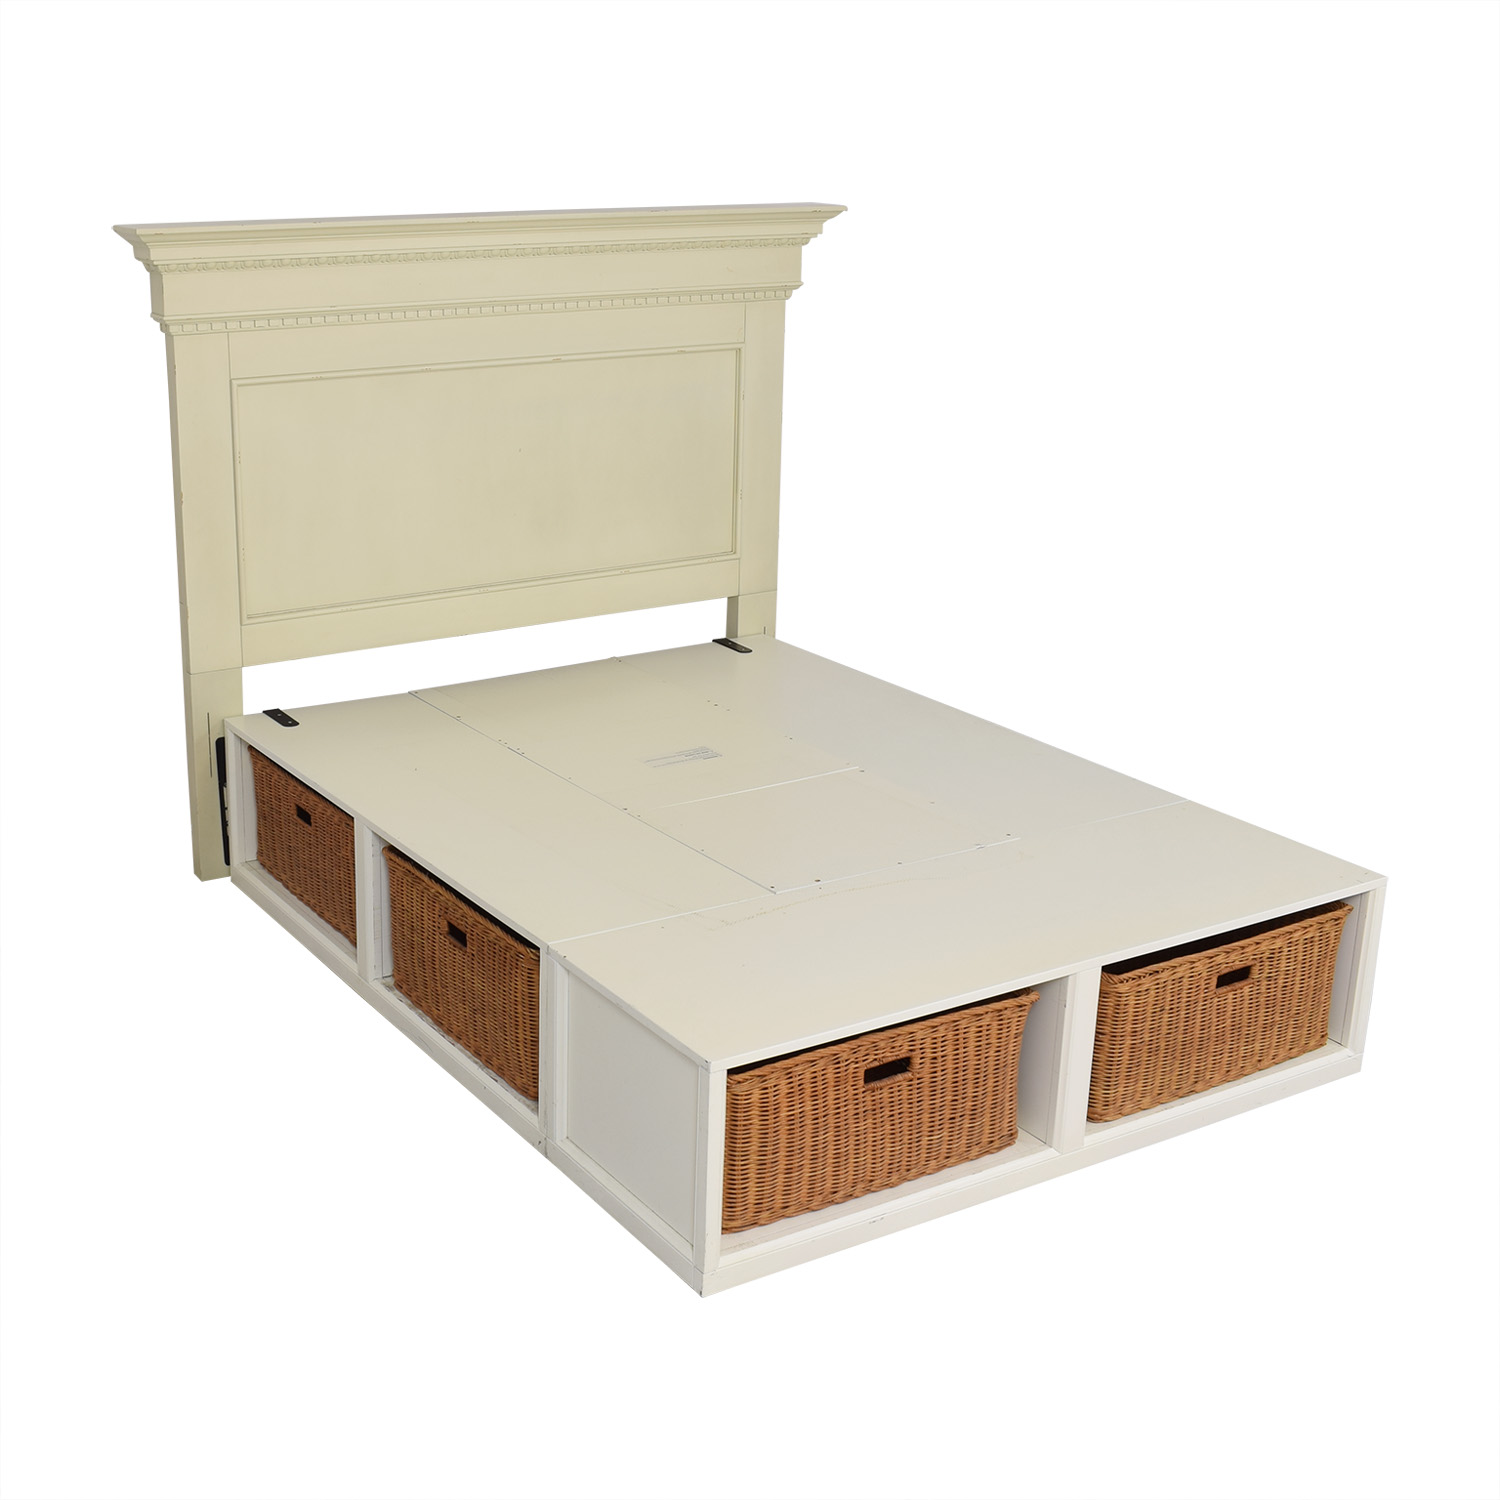 Pottery Barn Pottery Barn Addison Headboard and Stratton Storage Platform Bed with Baskets Bed Frames